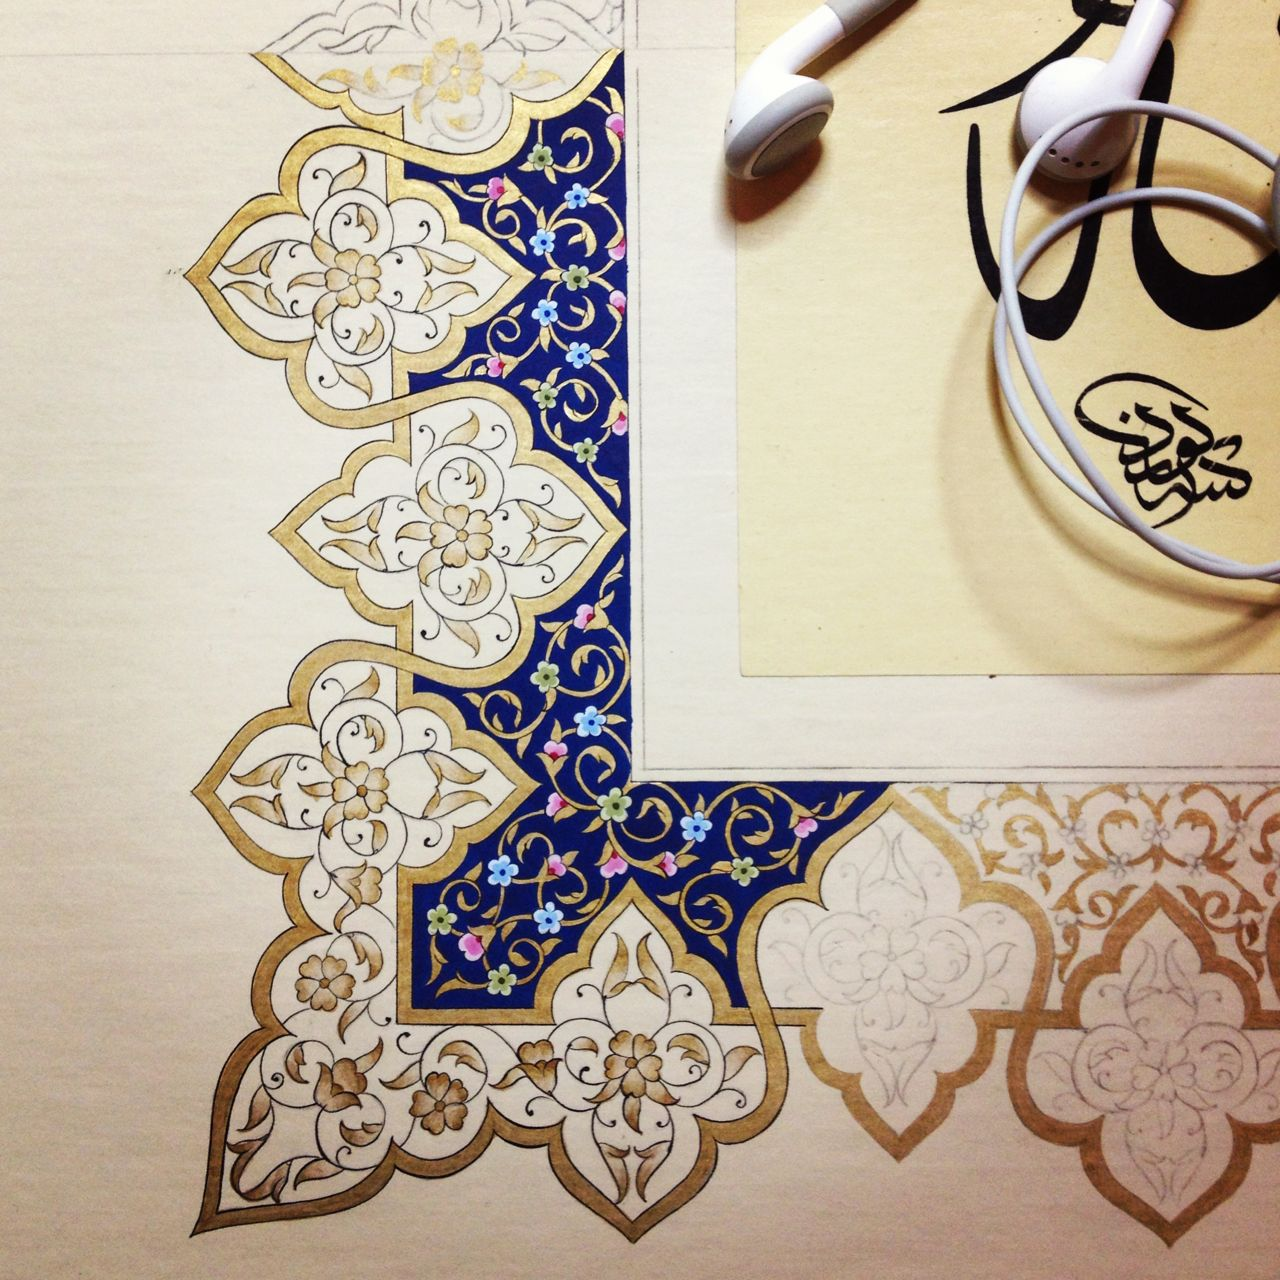 (1) illuminated manuscript | Tumblr #calligraphy